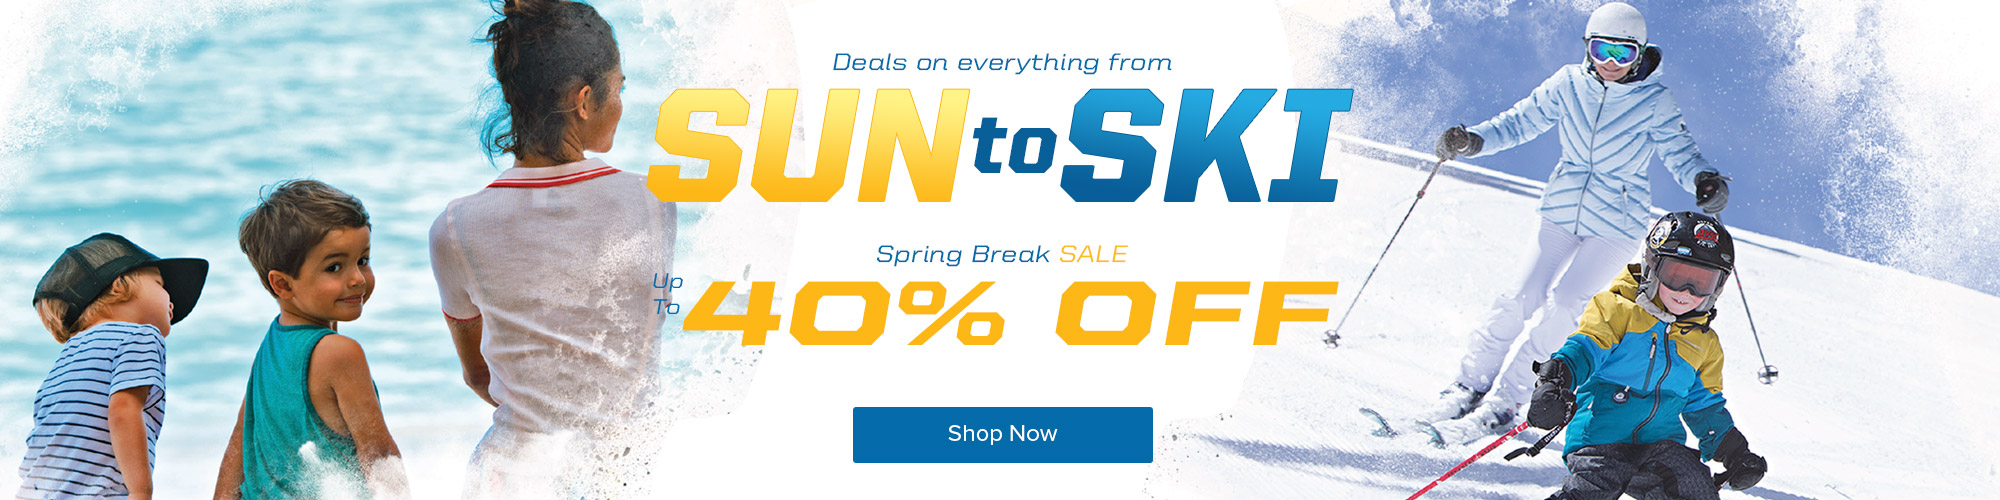 Deals on everything from sun to ski. Spring Break Sale - Up to 40% Off